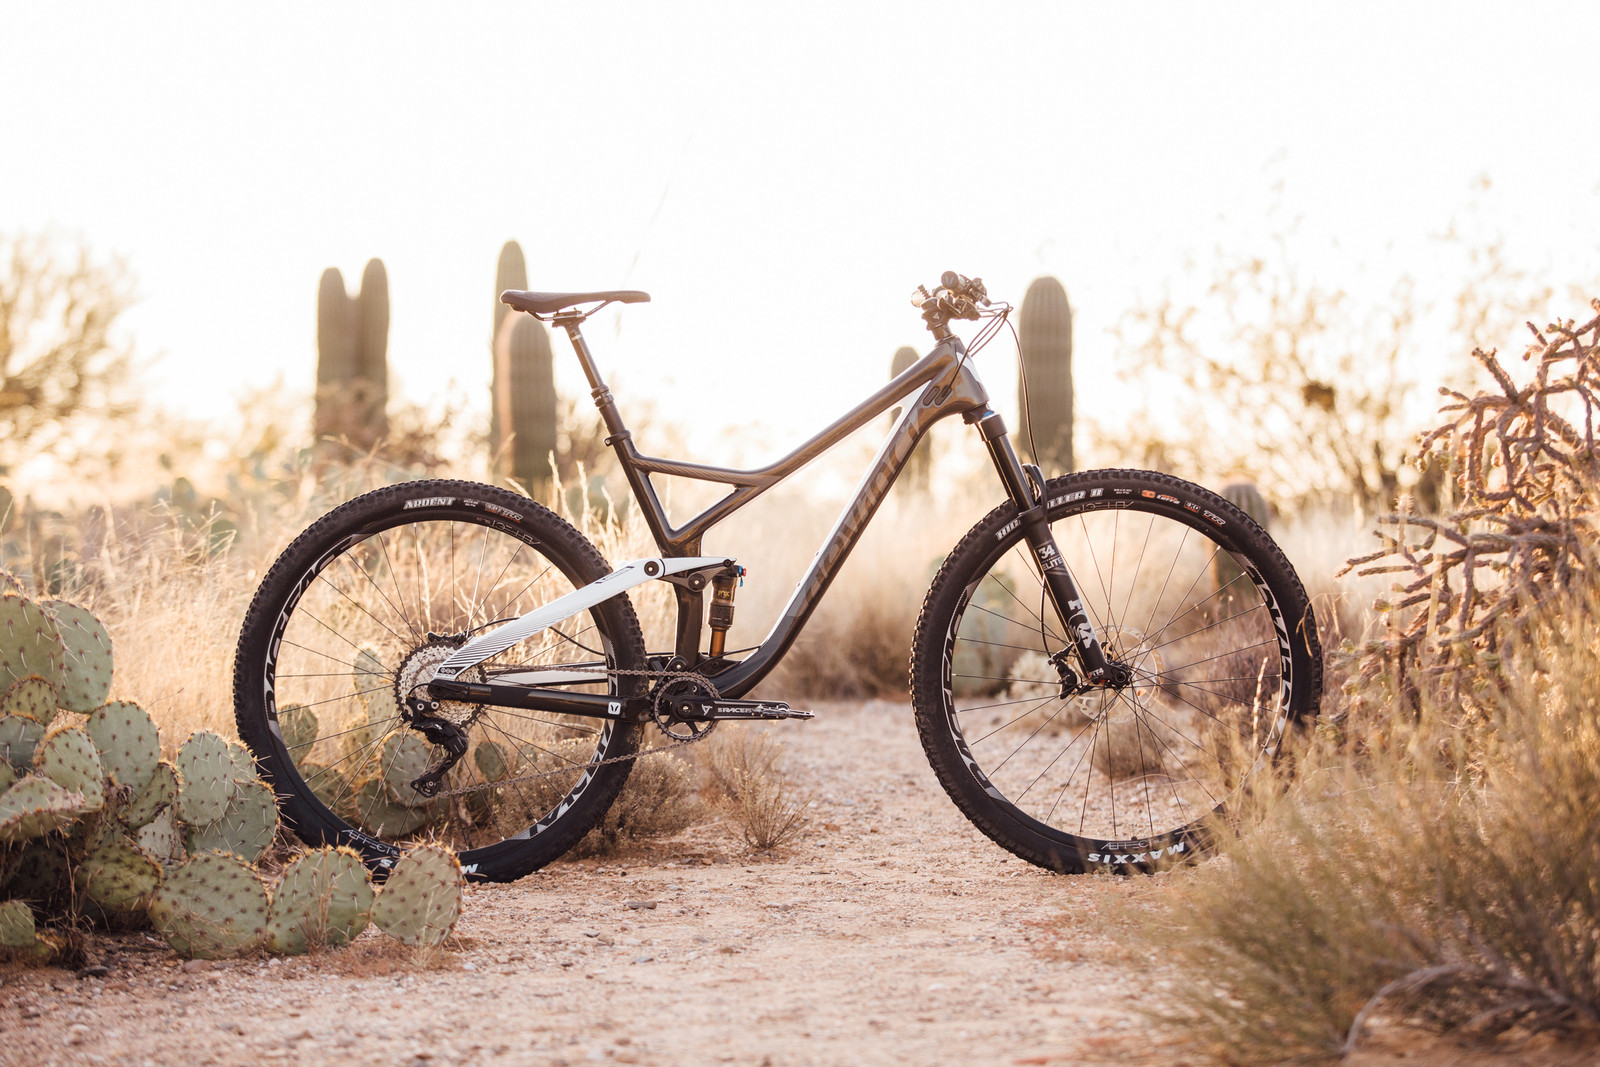 Devinci Django Carbon SLX / XT 29 - 2017 Vital MTB Test Sessions - Devinci Django Carbon SLX / XT 29 - 2017 Vital MTB Test Sessions - Mountain Biking Pictures - Vital MTB